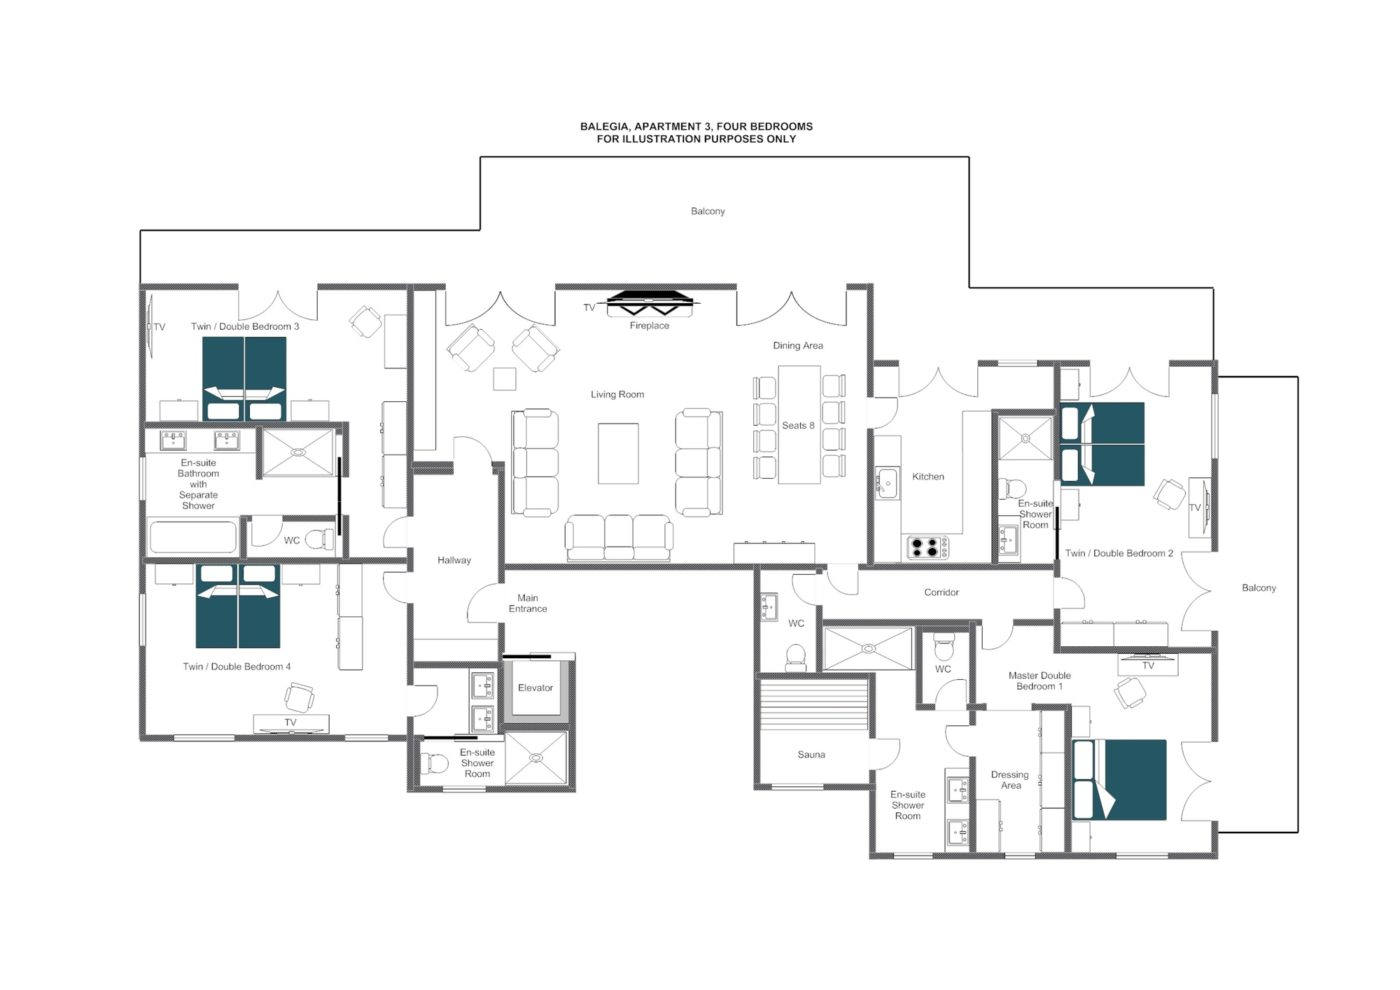 Balegia Apartment 3 Lech Floor Plan 1